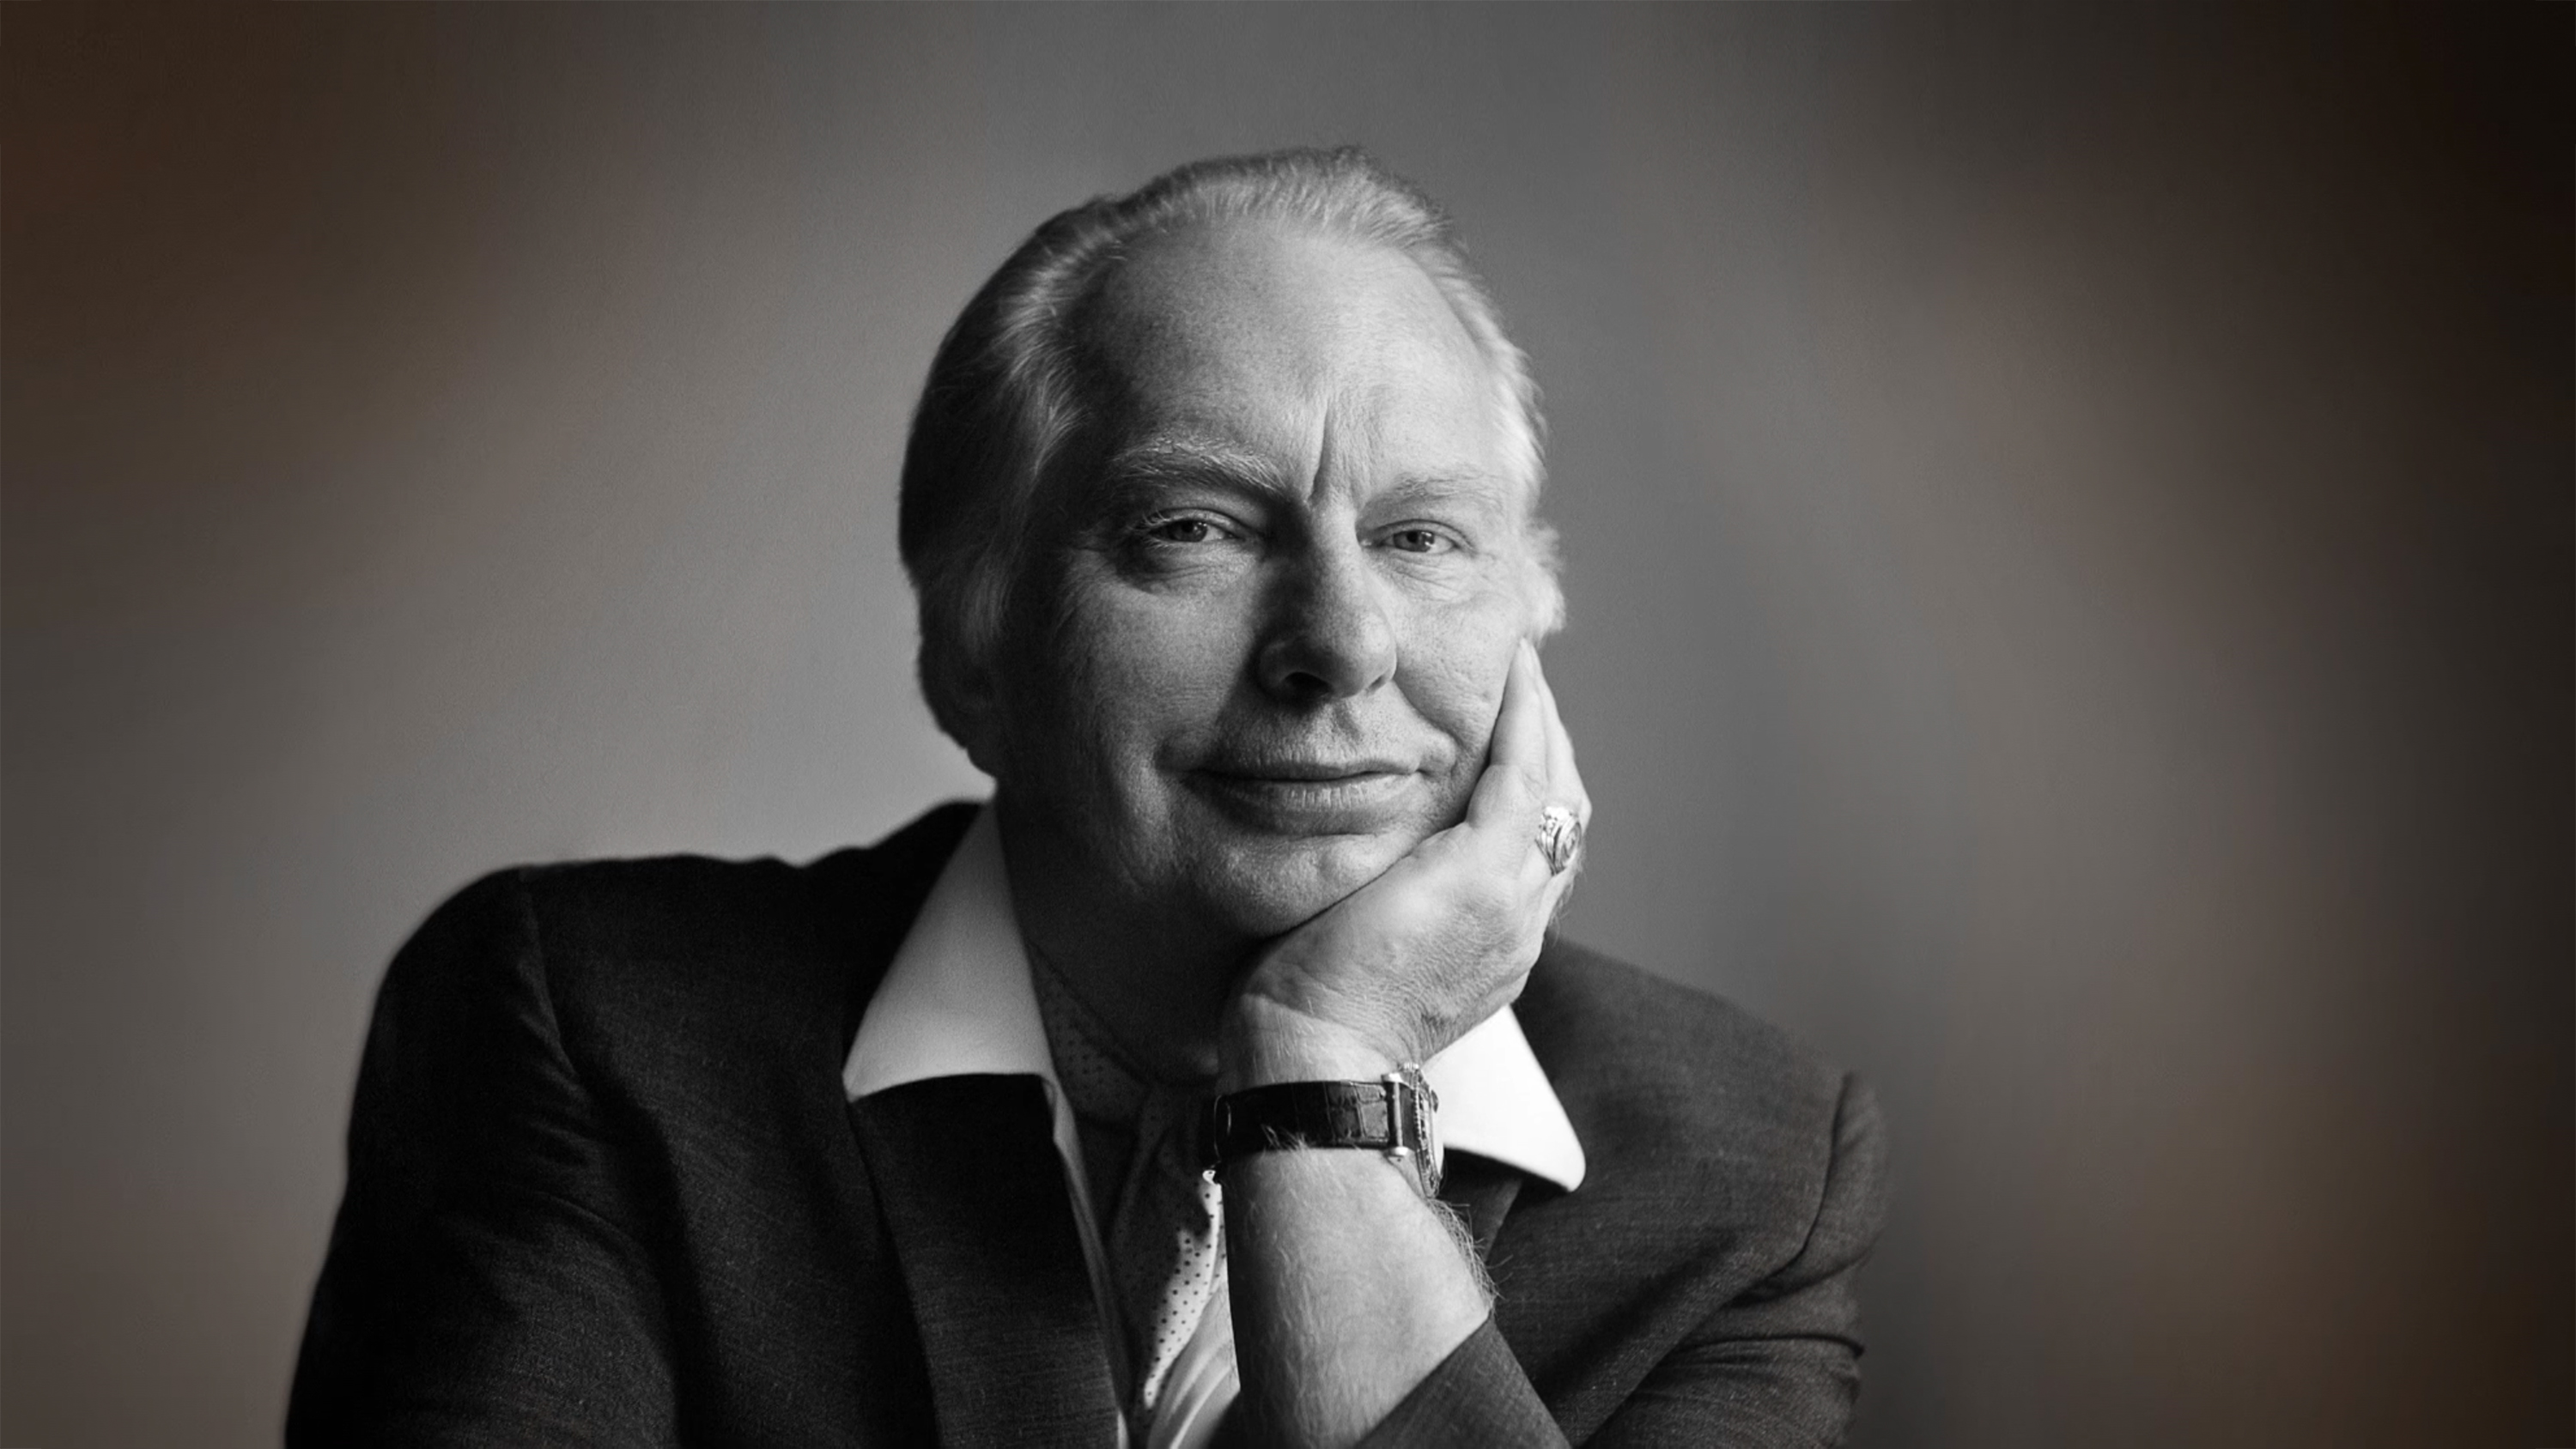 Who is L. Ron Hubbard?